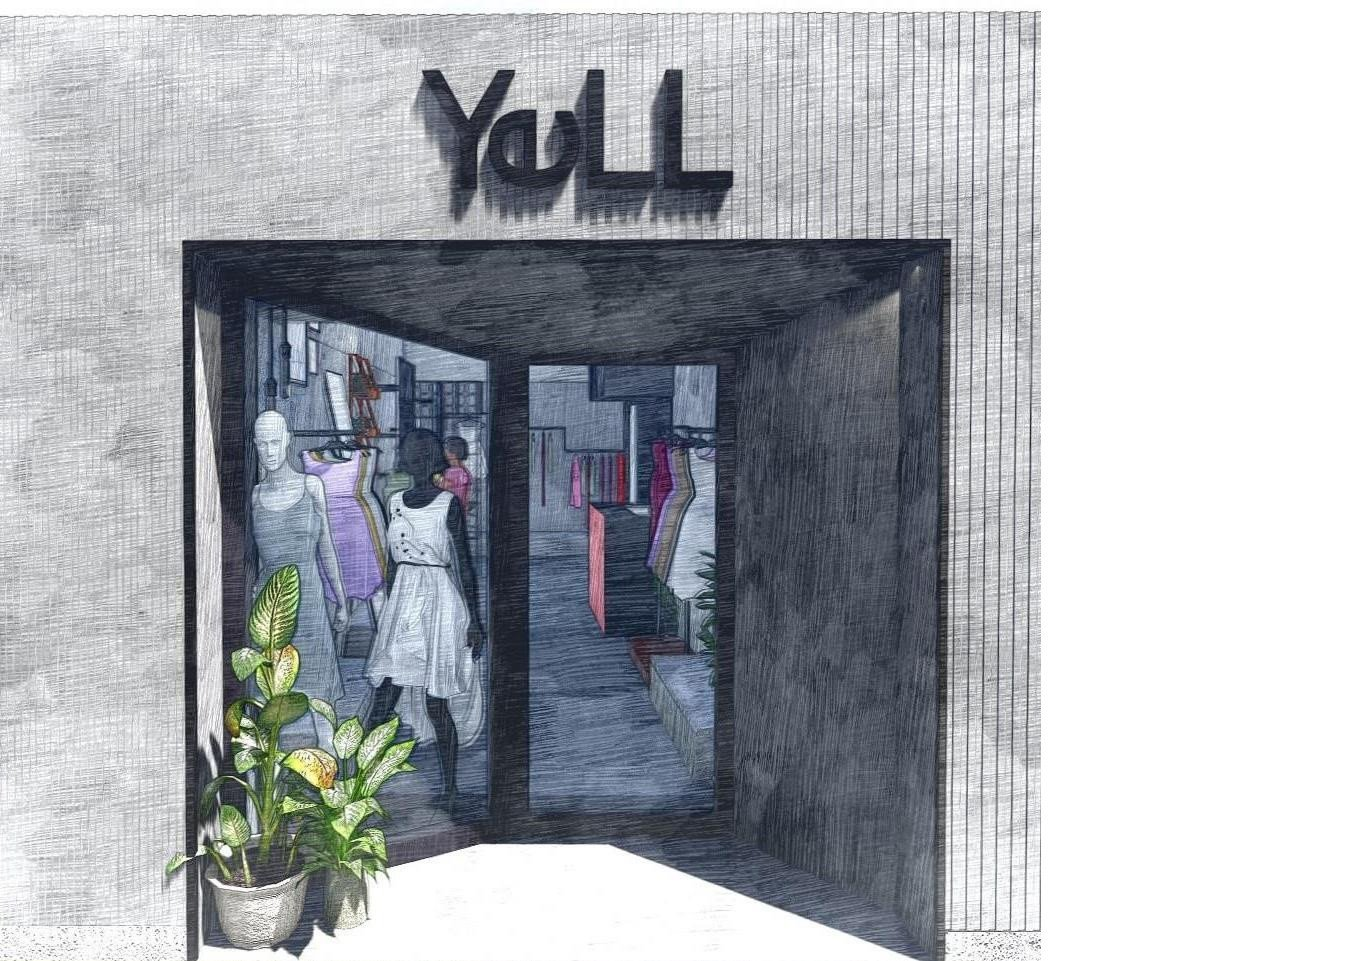 Contemporary Retail Brand 'Yell' opens new store in Kala Ghoda